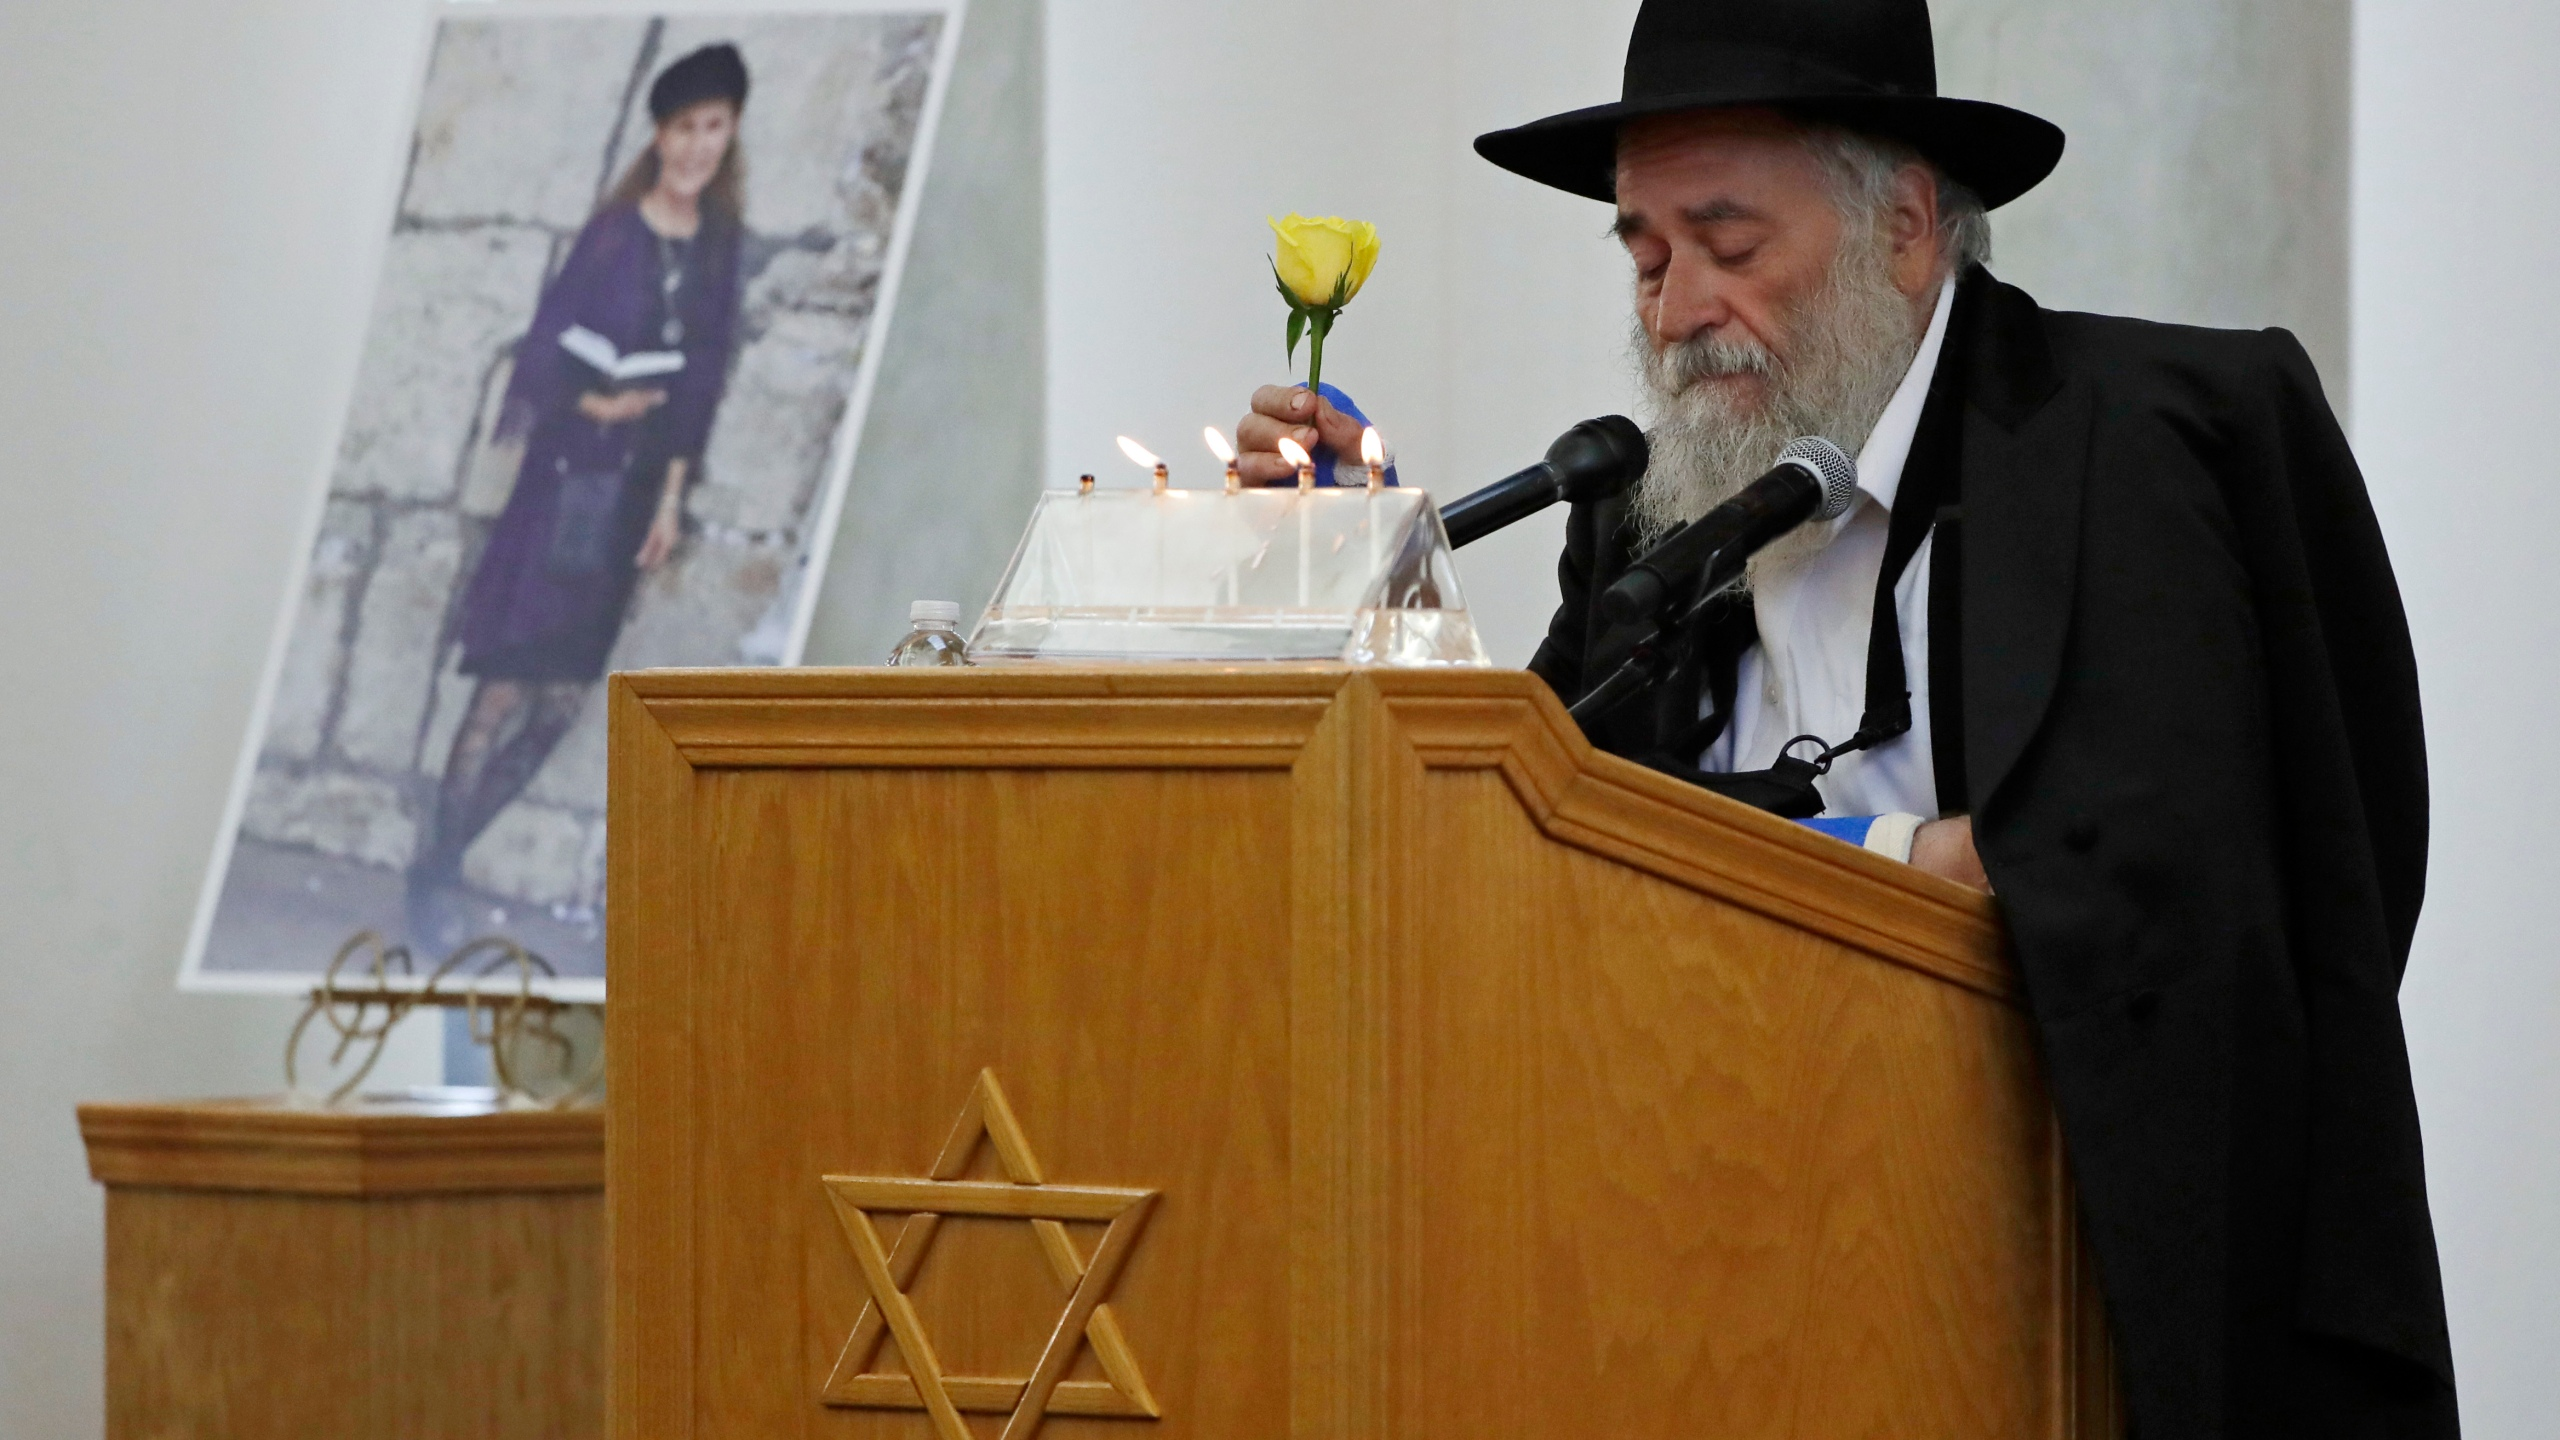 Yisroel Goldstein, Rabbi of Chabad of Poway, holds a yellow rose as he speaks at the funeral for Lori Gilbert-Kaye, who is pictured at left, in Poway on April 29, 2019. (AP Photo/Gregory Bull, File)